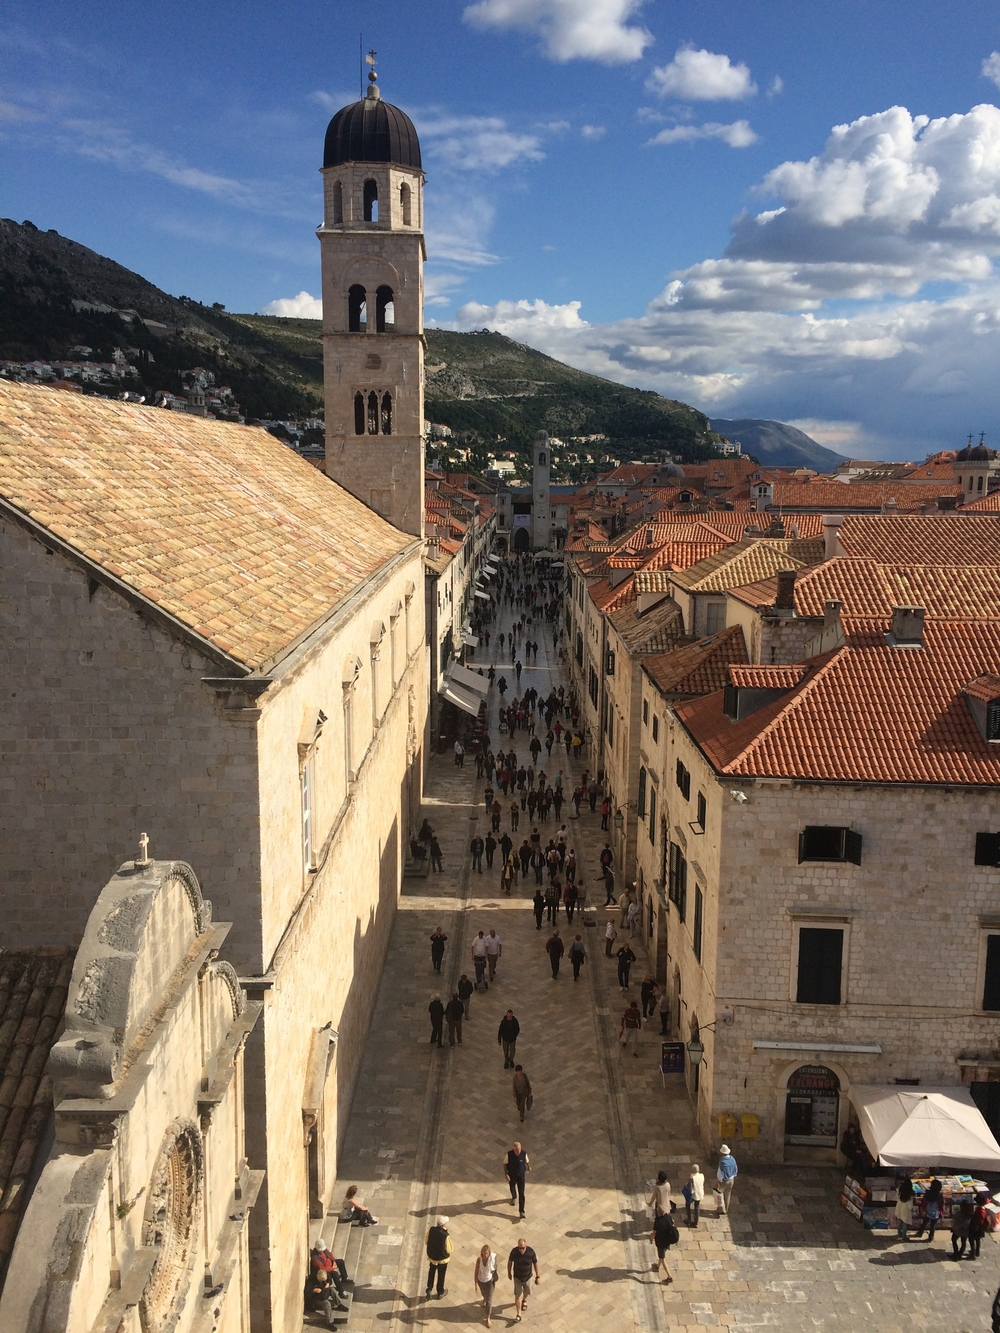 View of the main promenade in Dubrovnik, Stradun Street, from the city walls.